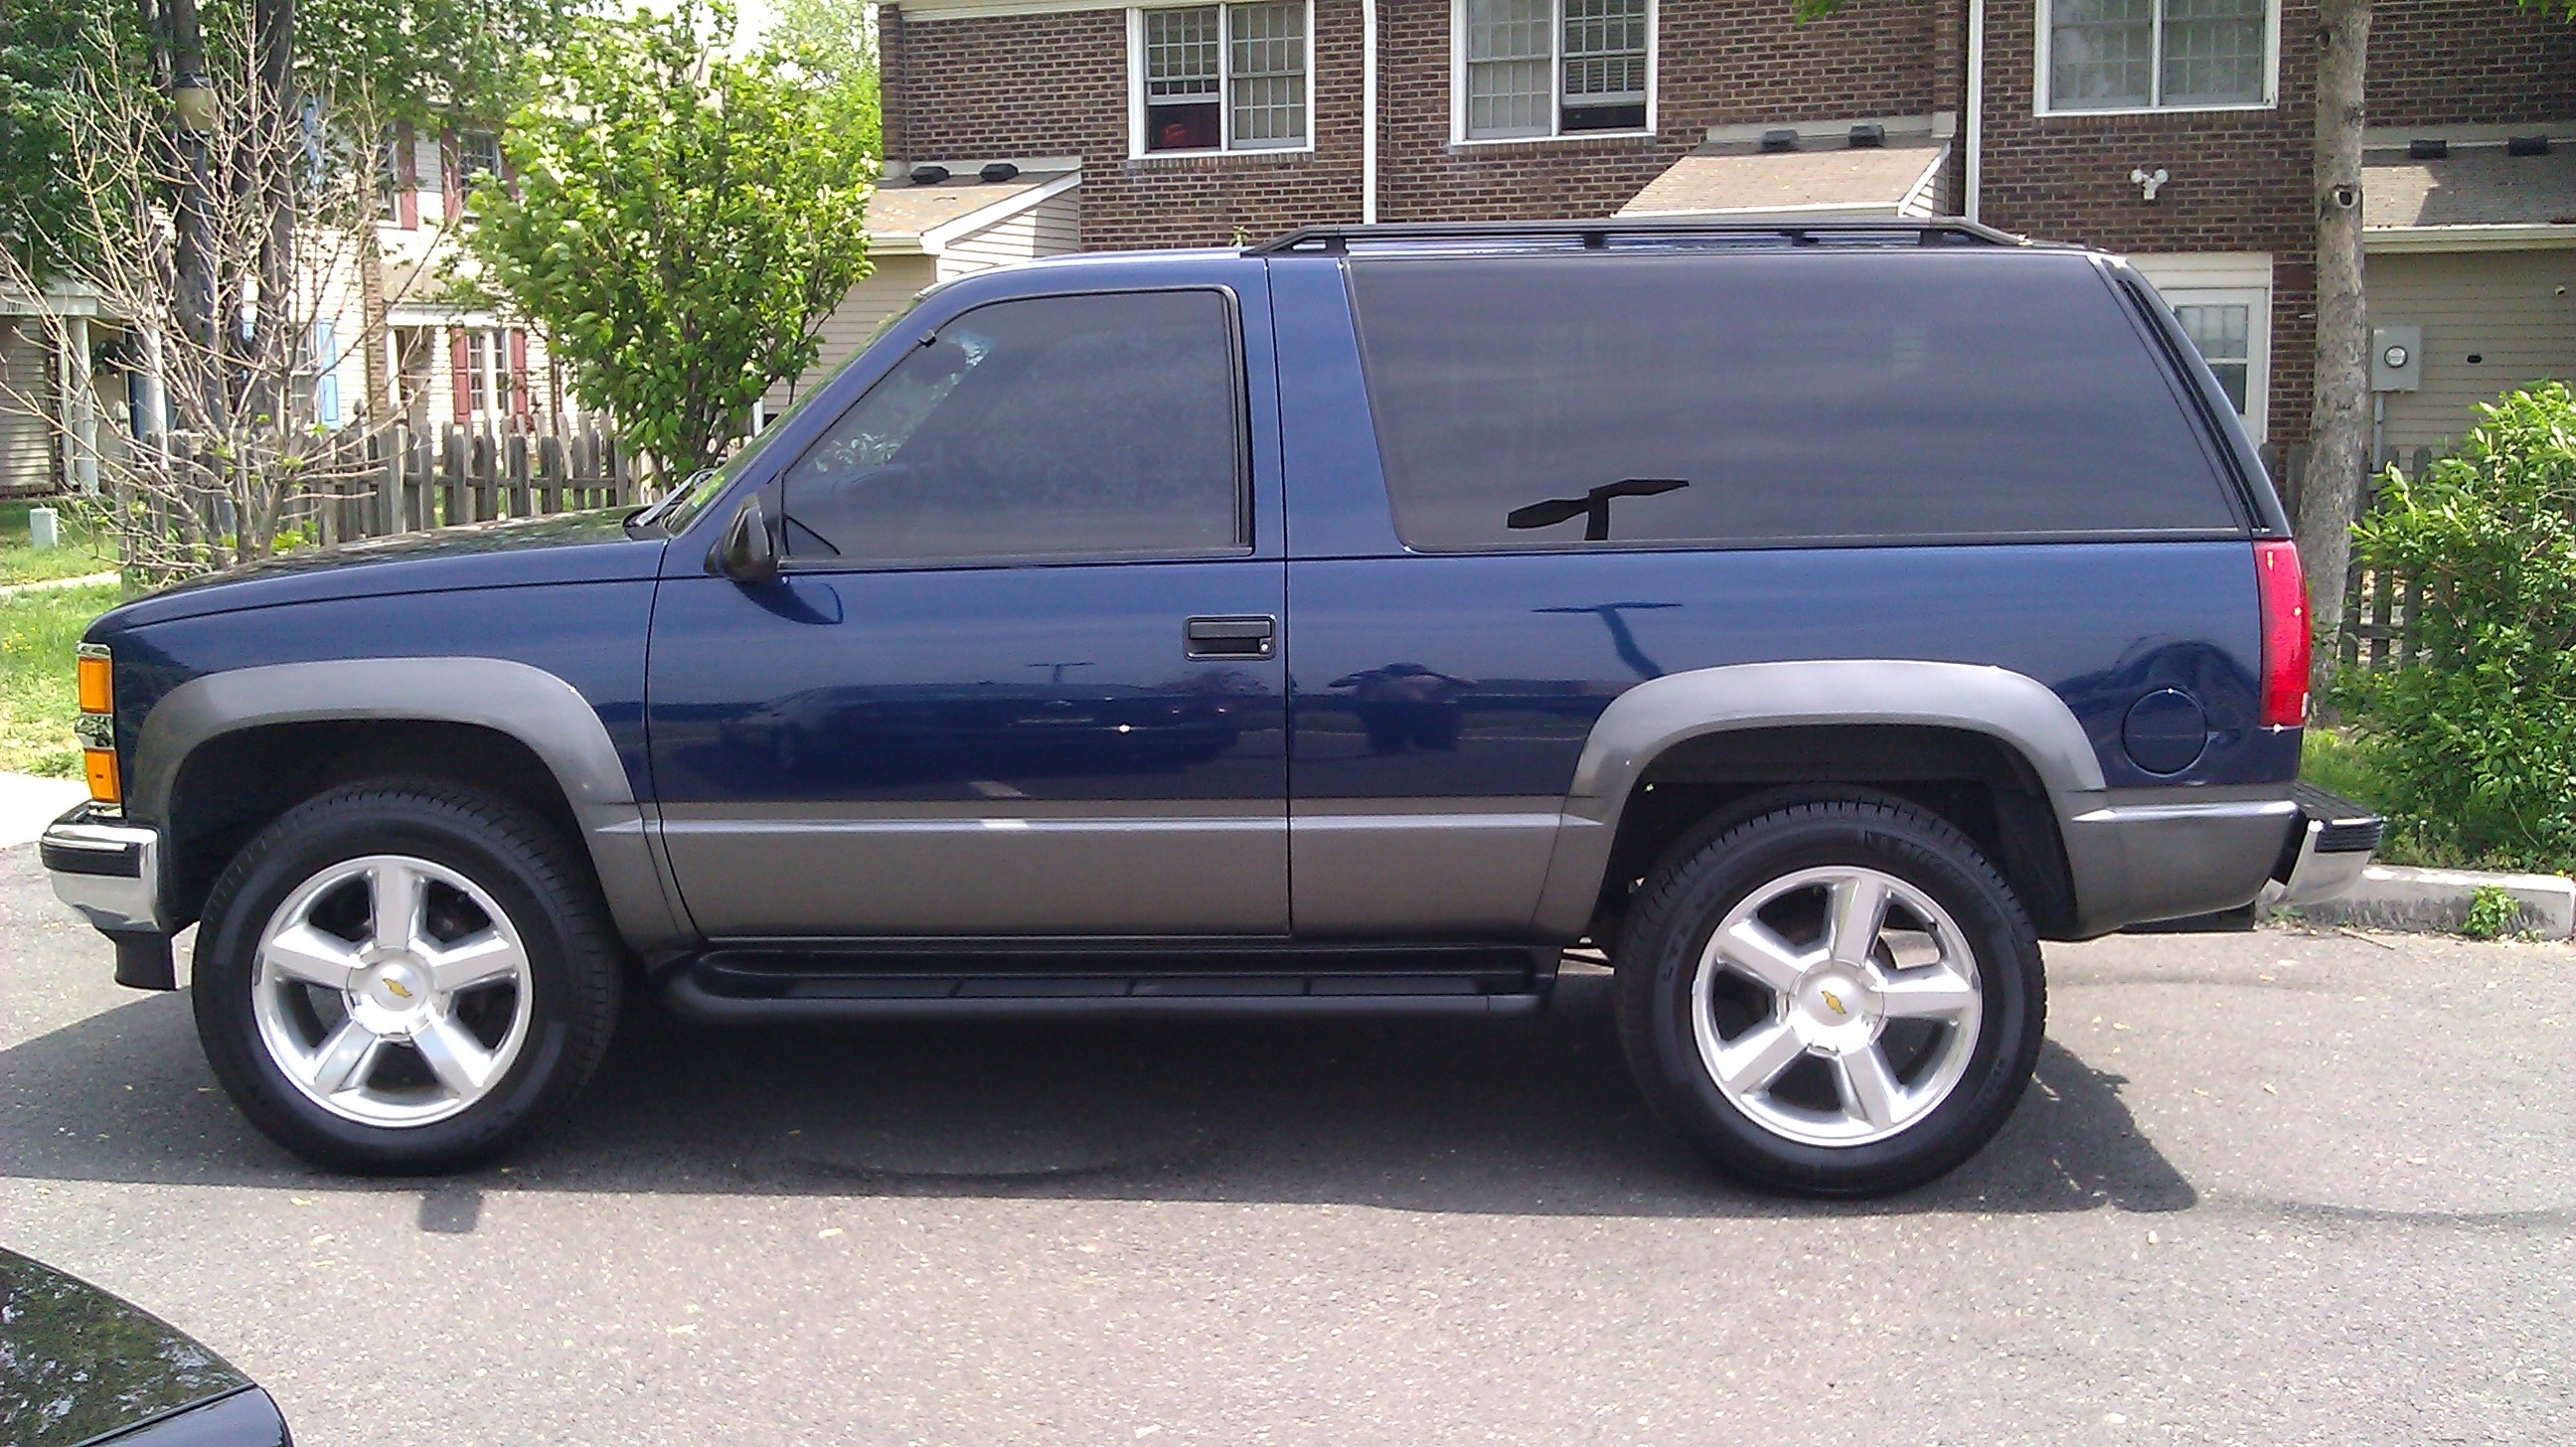 daweeni 1999 Chevrolet Tahoe Specs, Photos, Modification ...